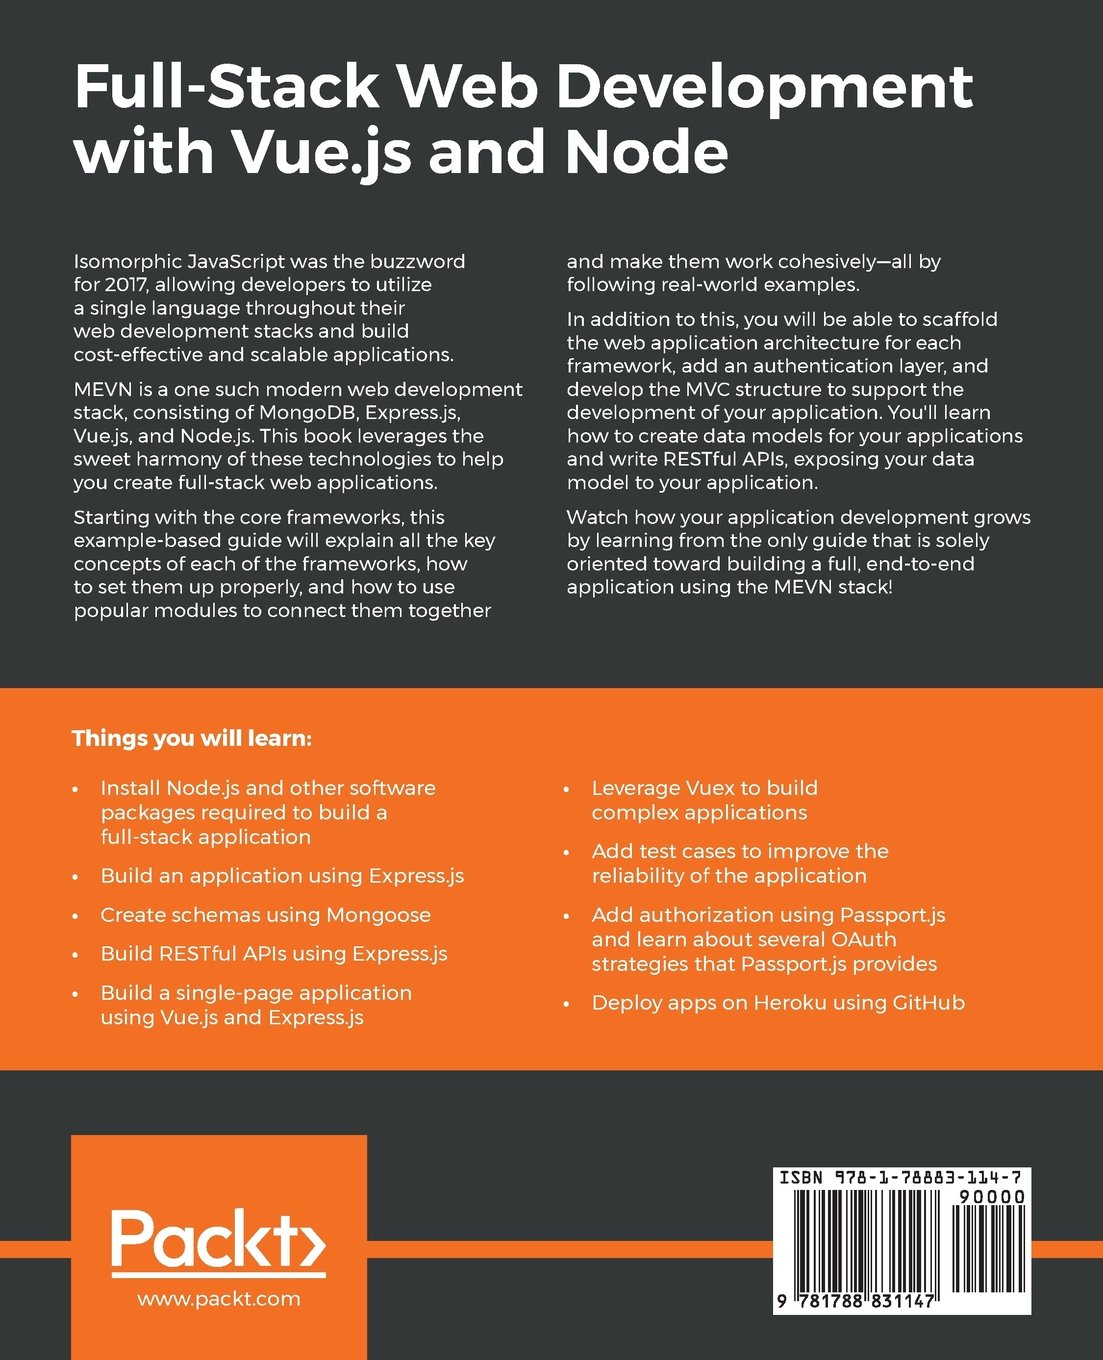 Full-Stack Web Development with Vue js and Node: Build